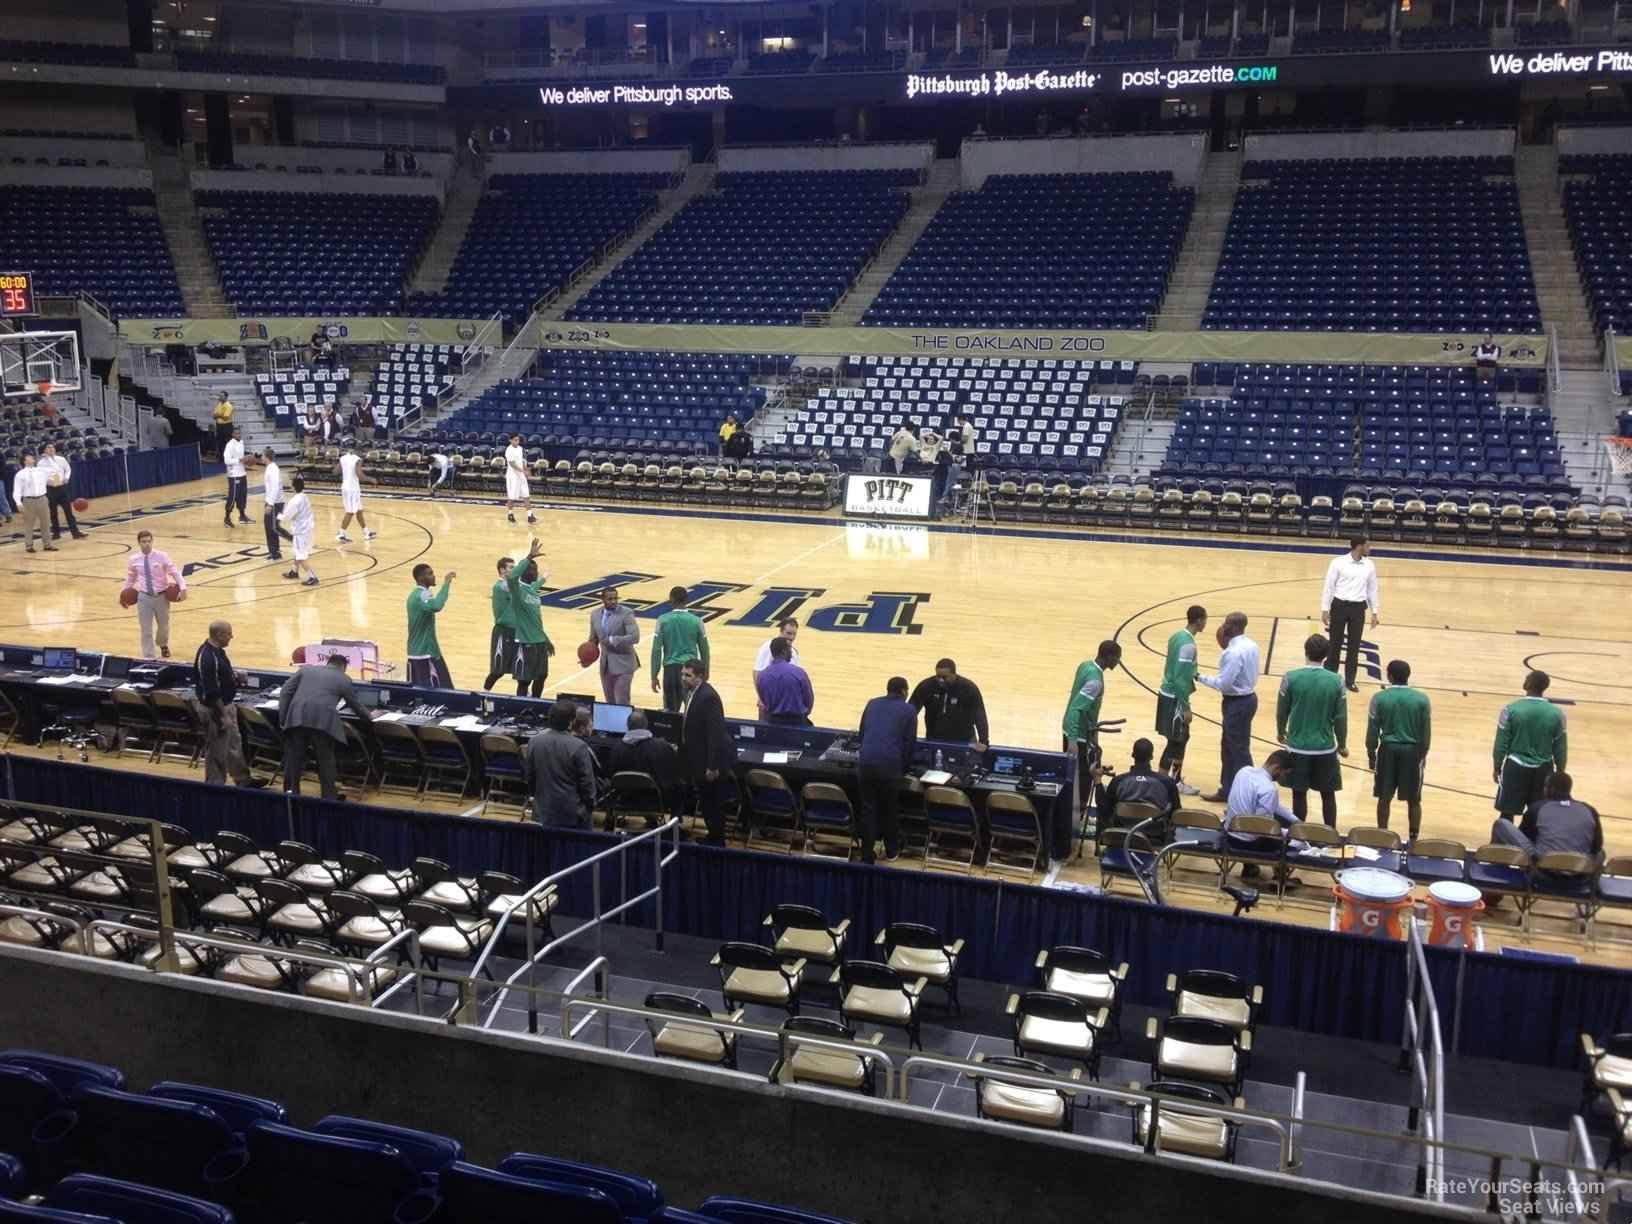 Seat View for Petersen Events Center Section 120, Row H